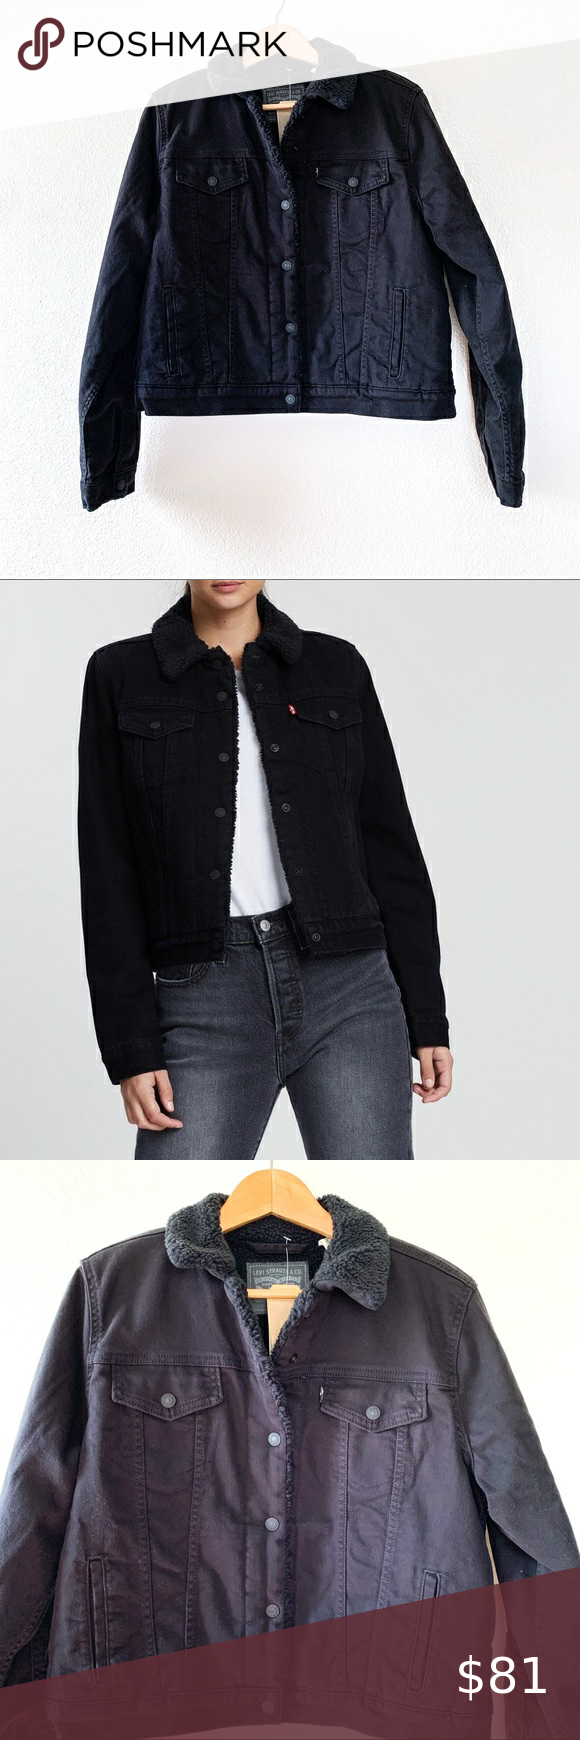 Levi's NWT Black Sherpa Original Trucker Jacket in 2020